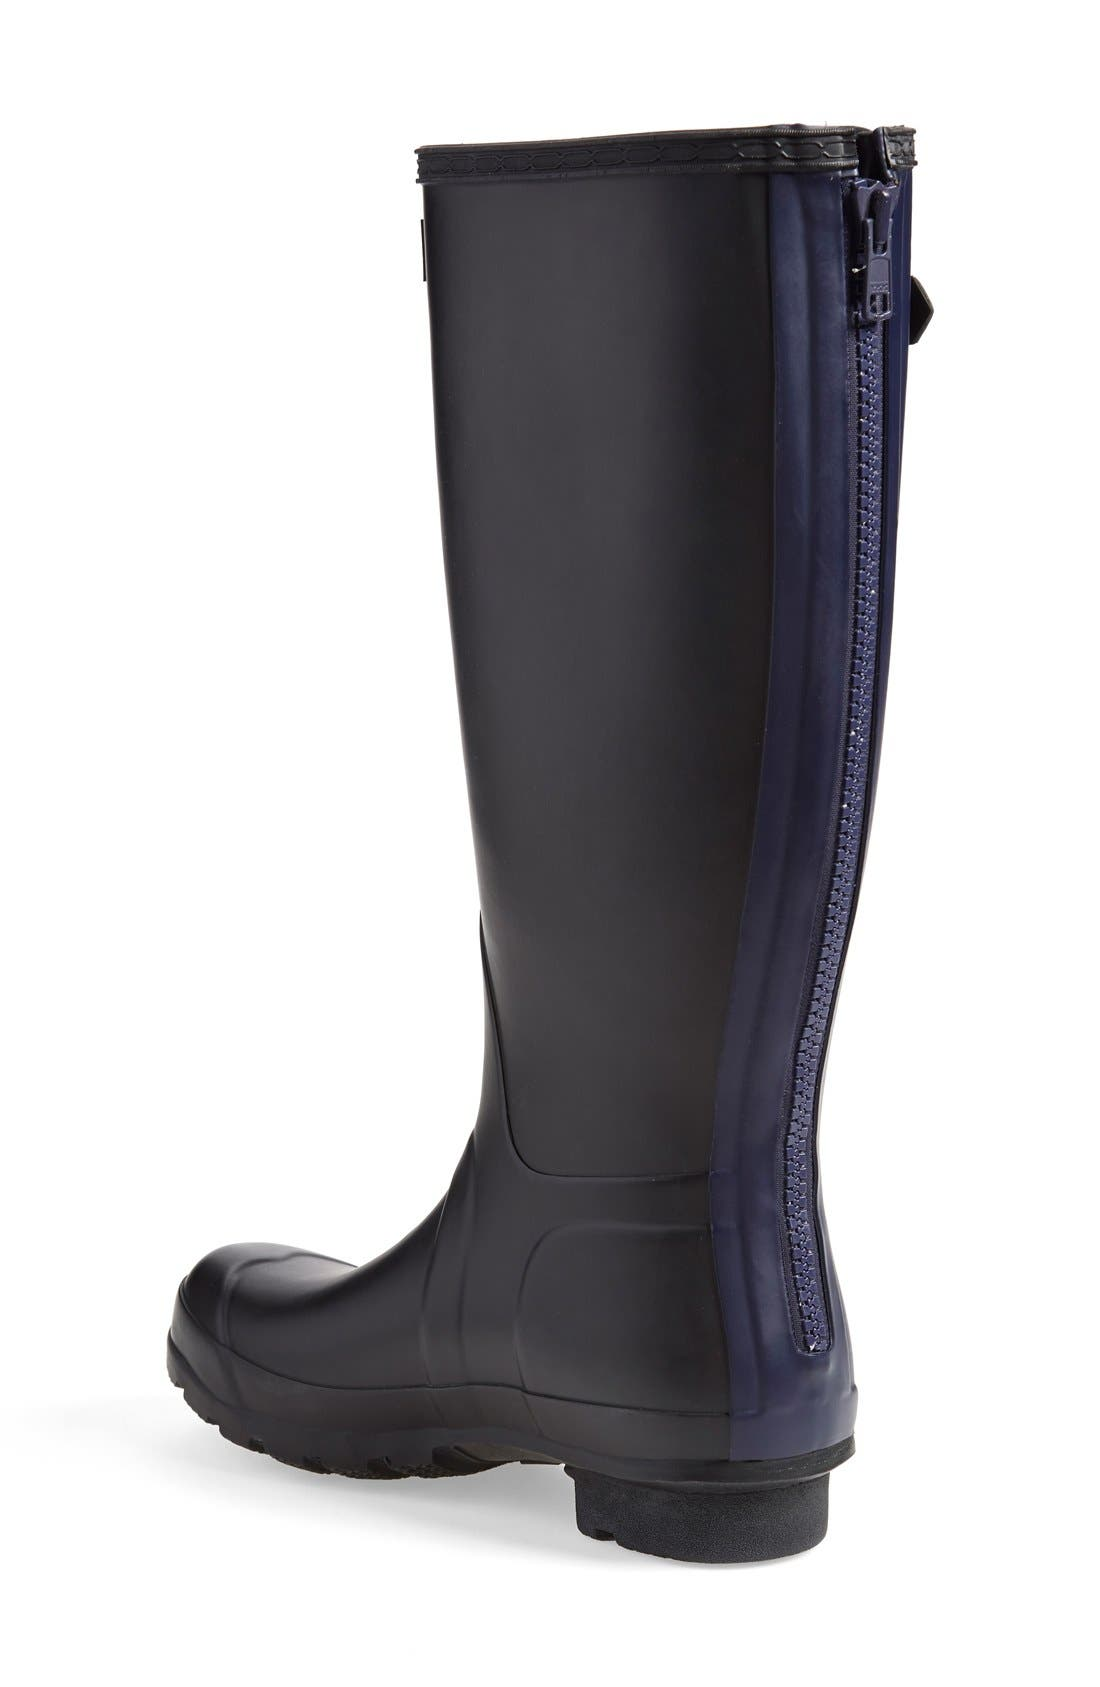 Alternate Image 2  - Hunter 'Tall' Back Zip Rain Boot (Women) (Nordstrom Exclusive)